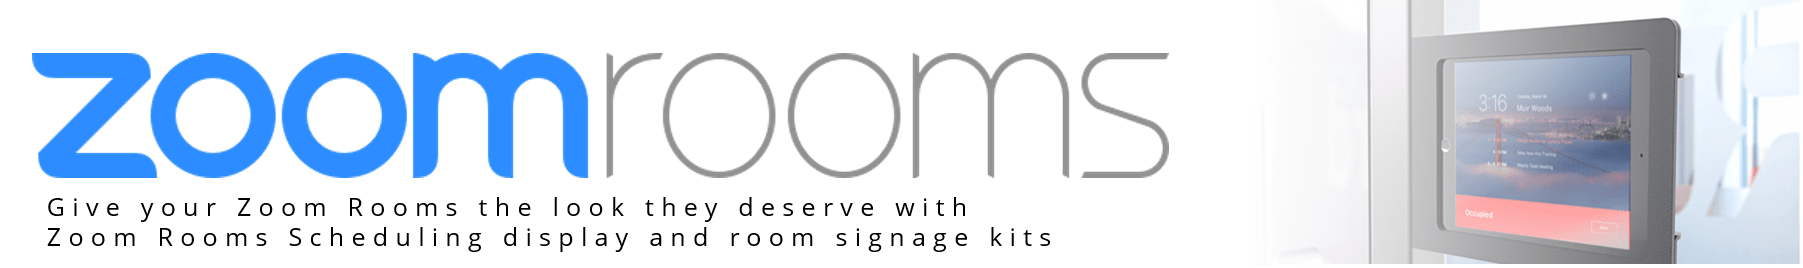 Zoom Rooms Scheduling Display and Signage Kits from VCGear.com